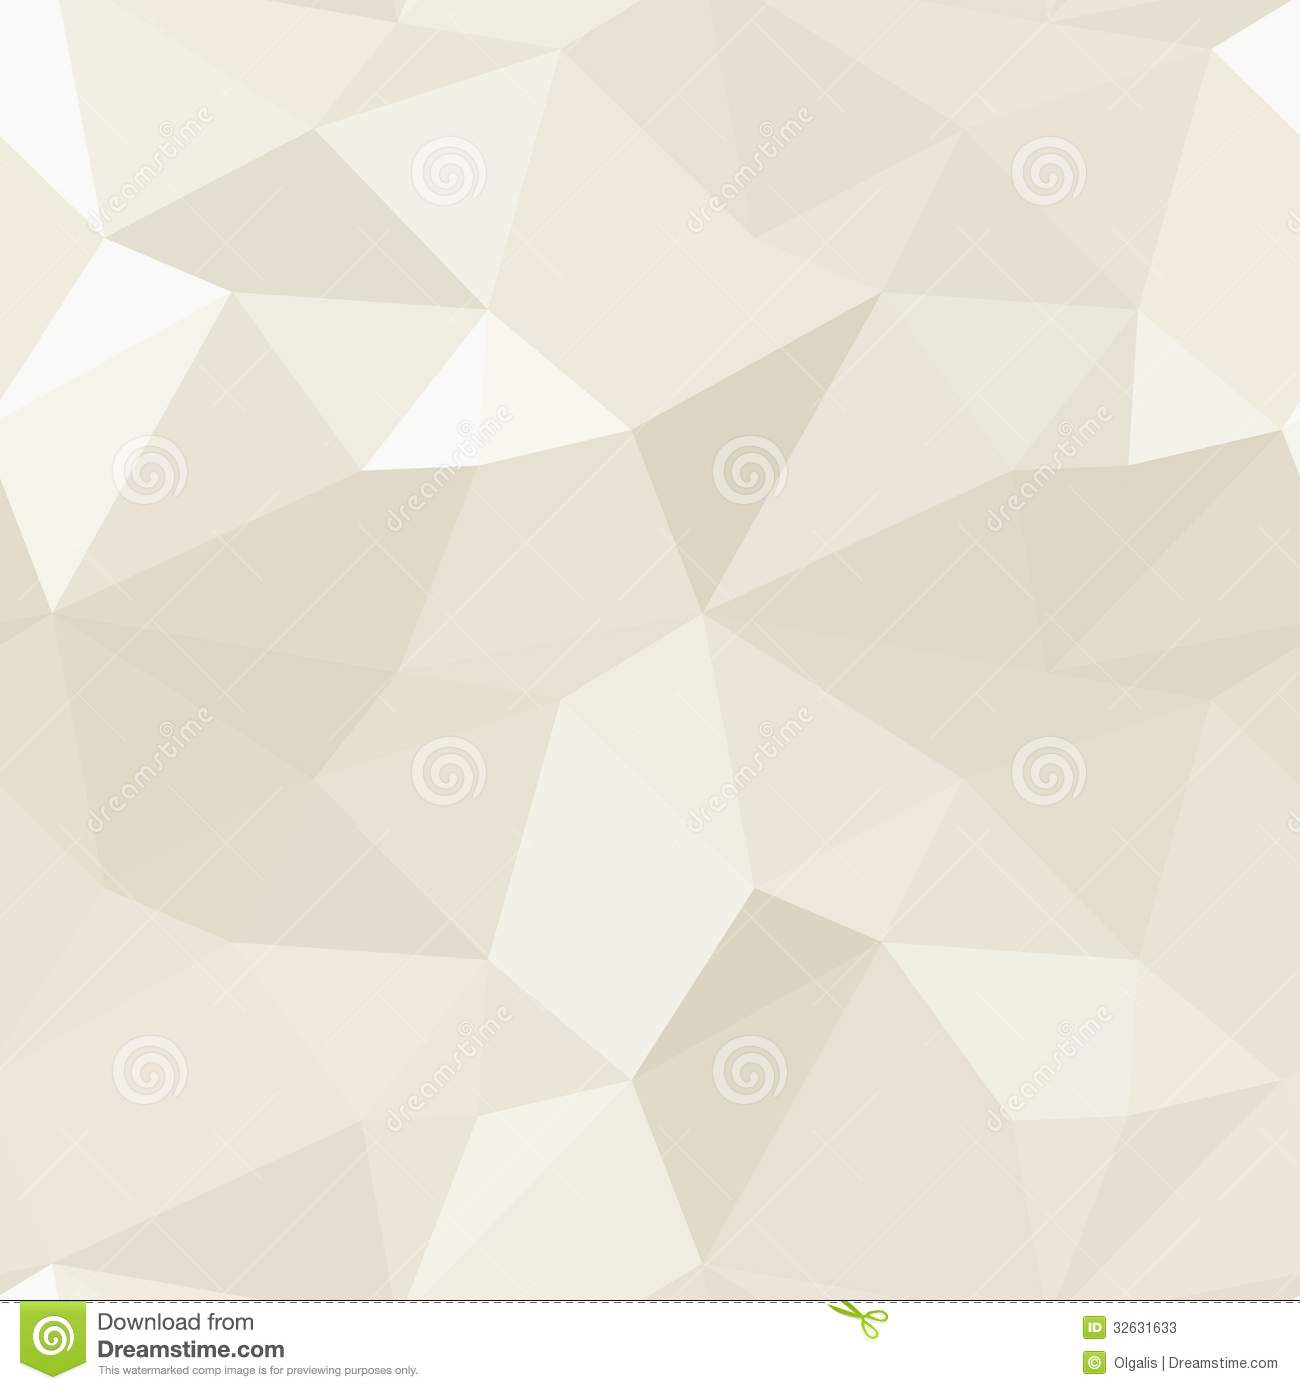 Crumpled paper seamless pattern stock illustration for Wallpaper sites